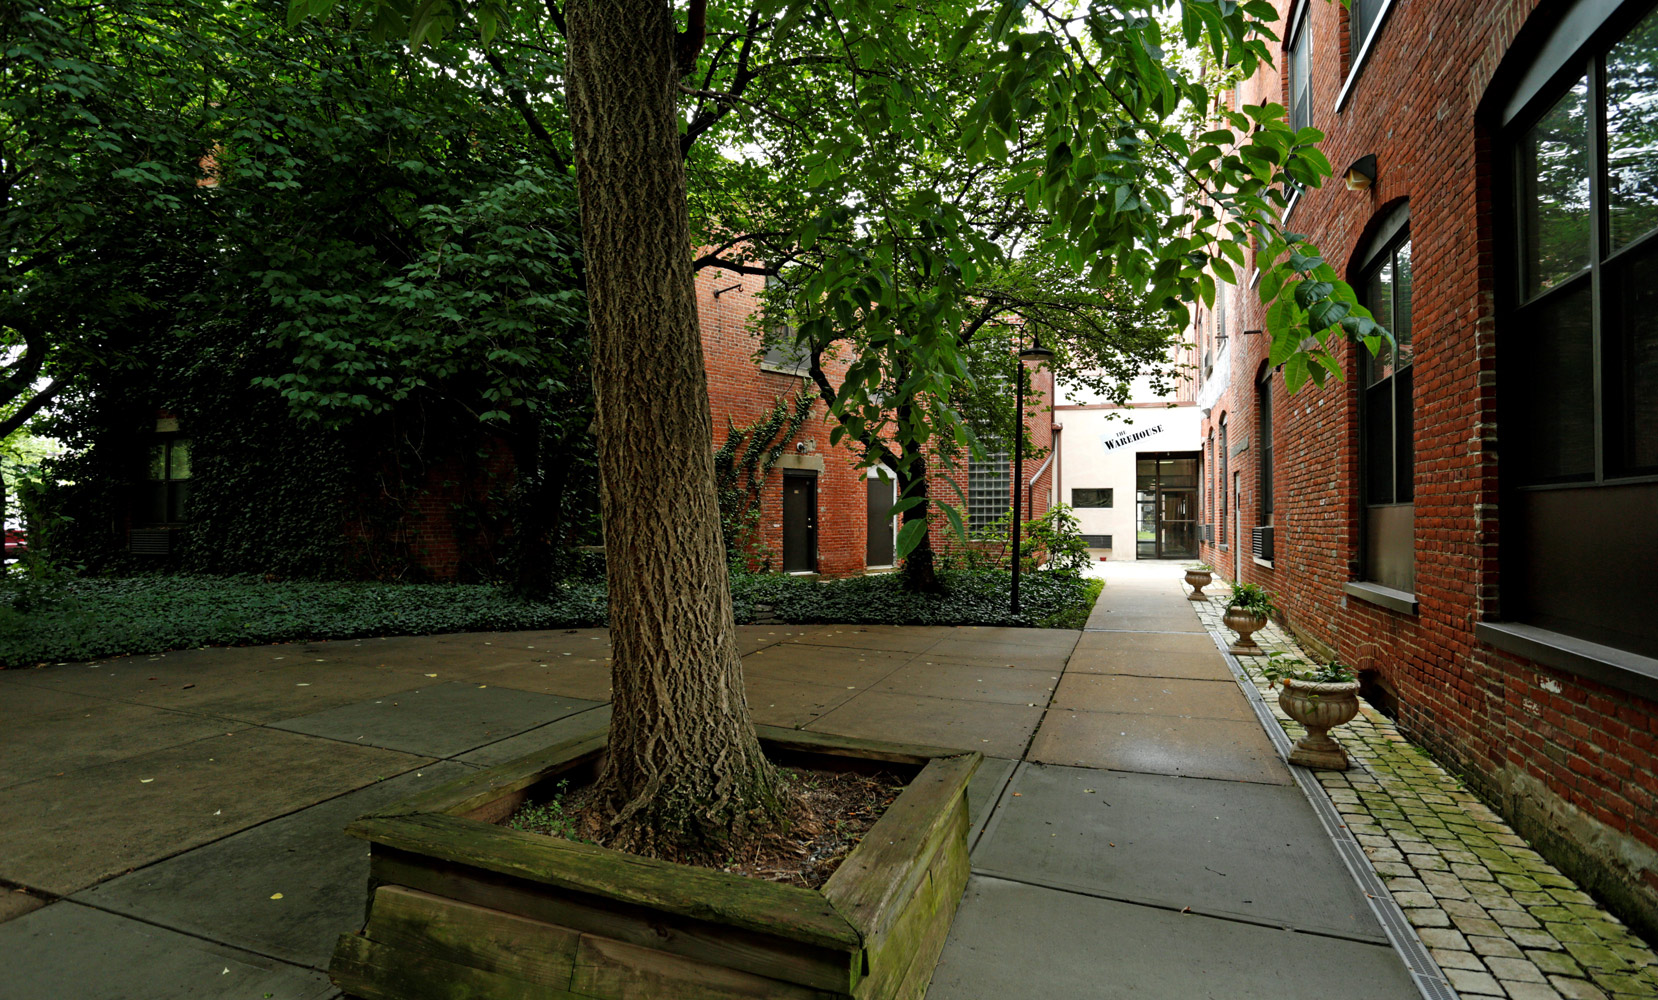 Shaded Areas at The Warehouse Apartments in Somerville, New Jersey